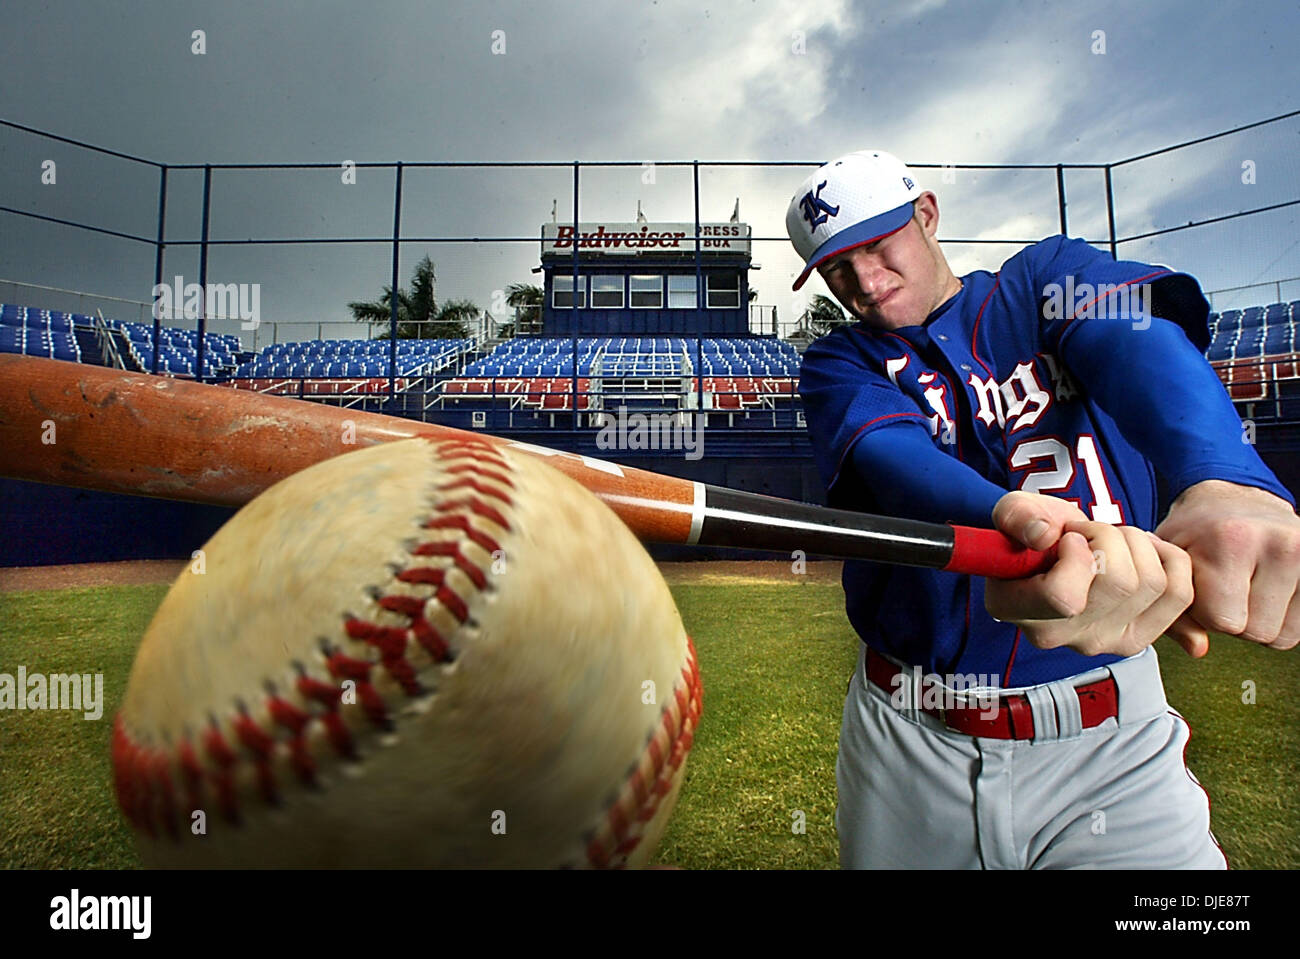 Jun 04, 2004; Boca Raton, FL, USA; DAVE DINATALE racked up some pretty impressive batting stats for the King's Academy squad this year, which earned him the title of the Palm Beach Post's Small Schools Baseball Player of the Year. - Stock Image